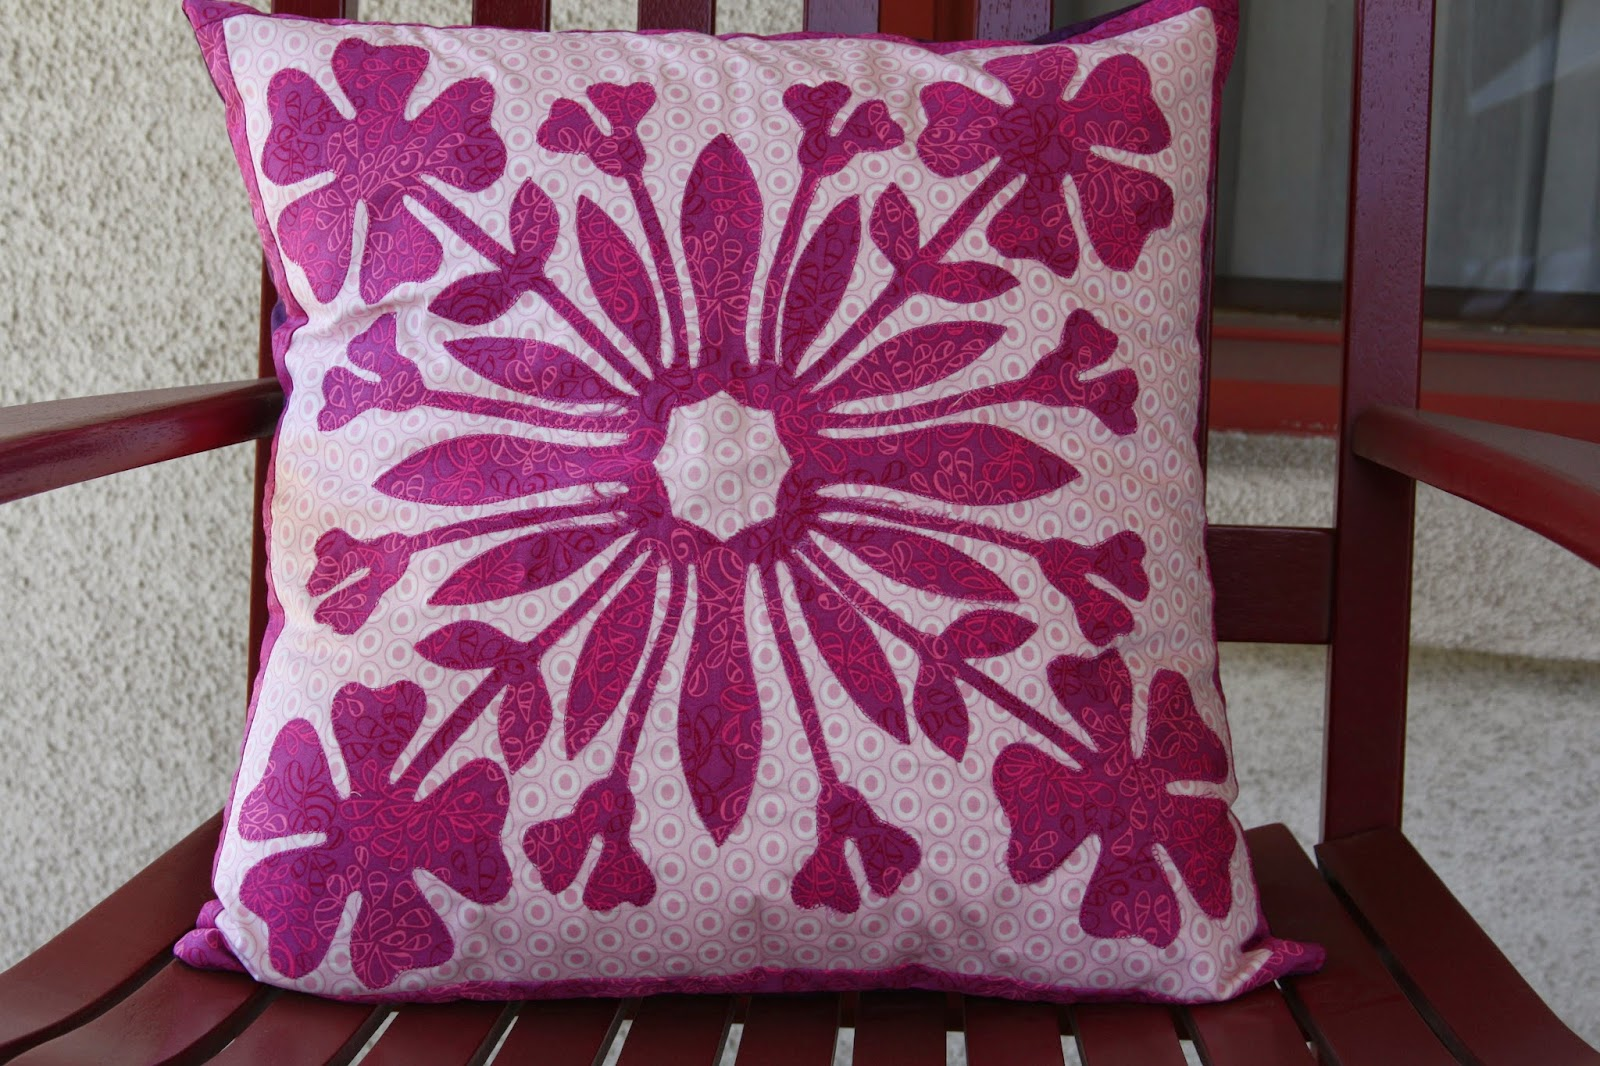 http://www.lovequilting.com/shop/kits/hawaiian-hula-flower/